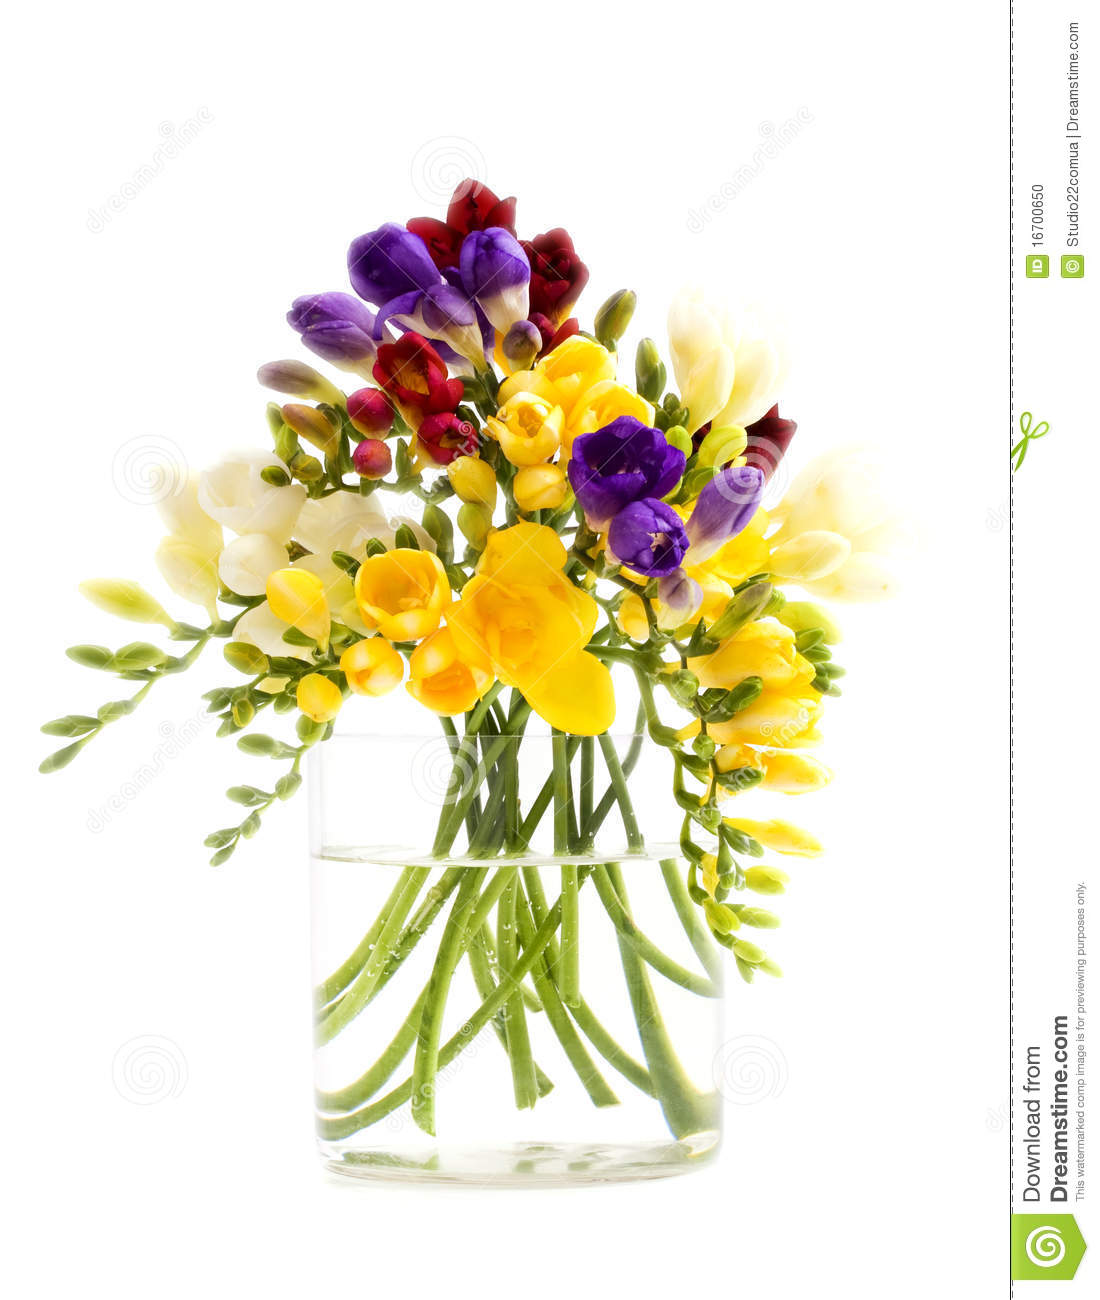 Freesia Flowers Stock Photo Image 16700650